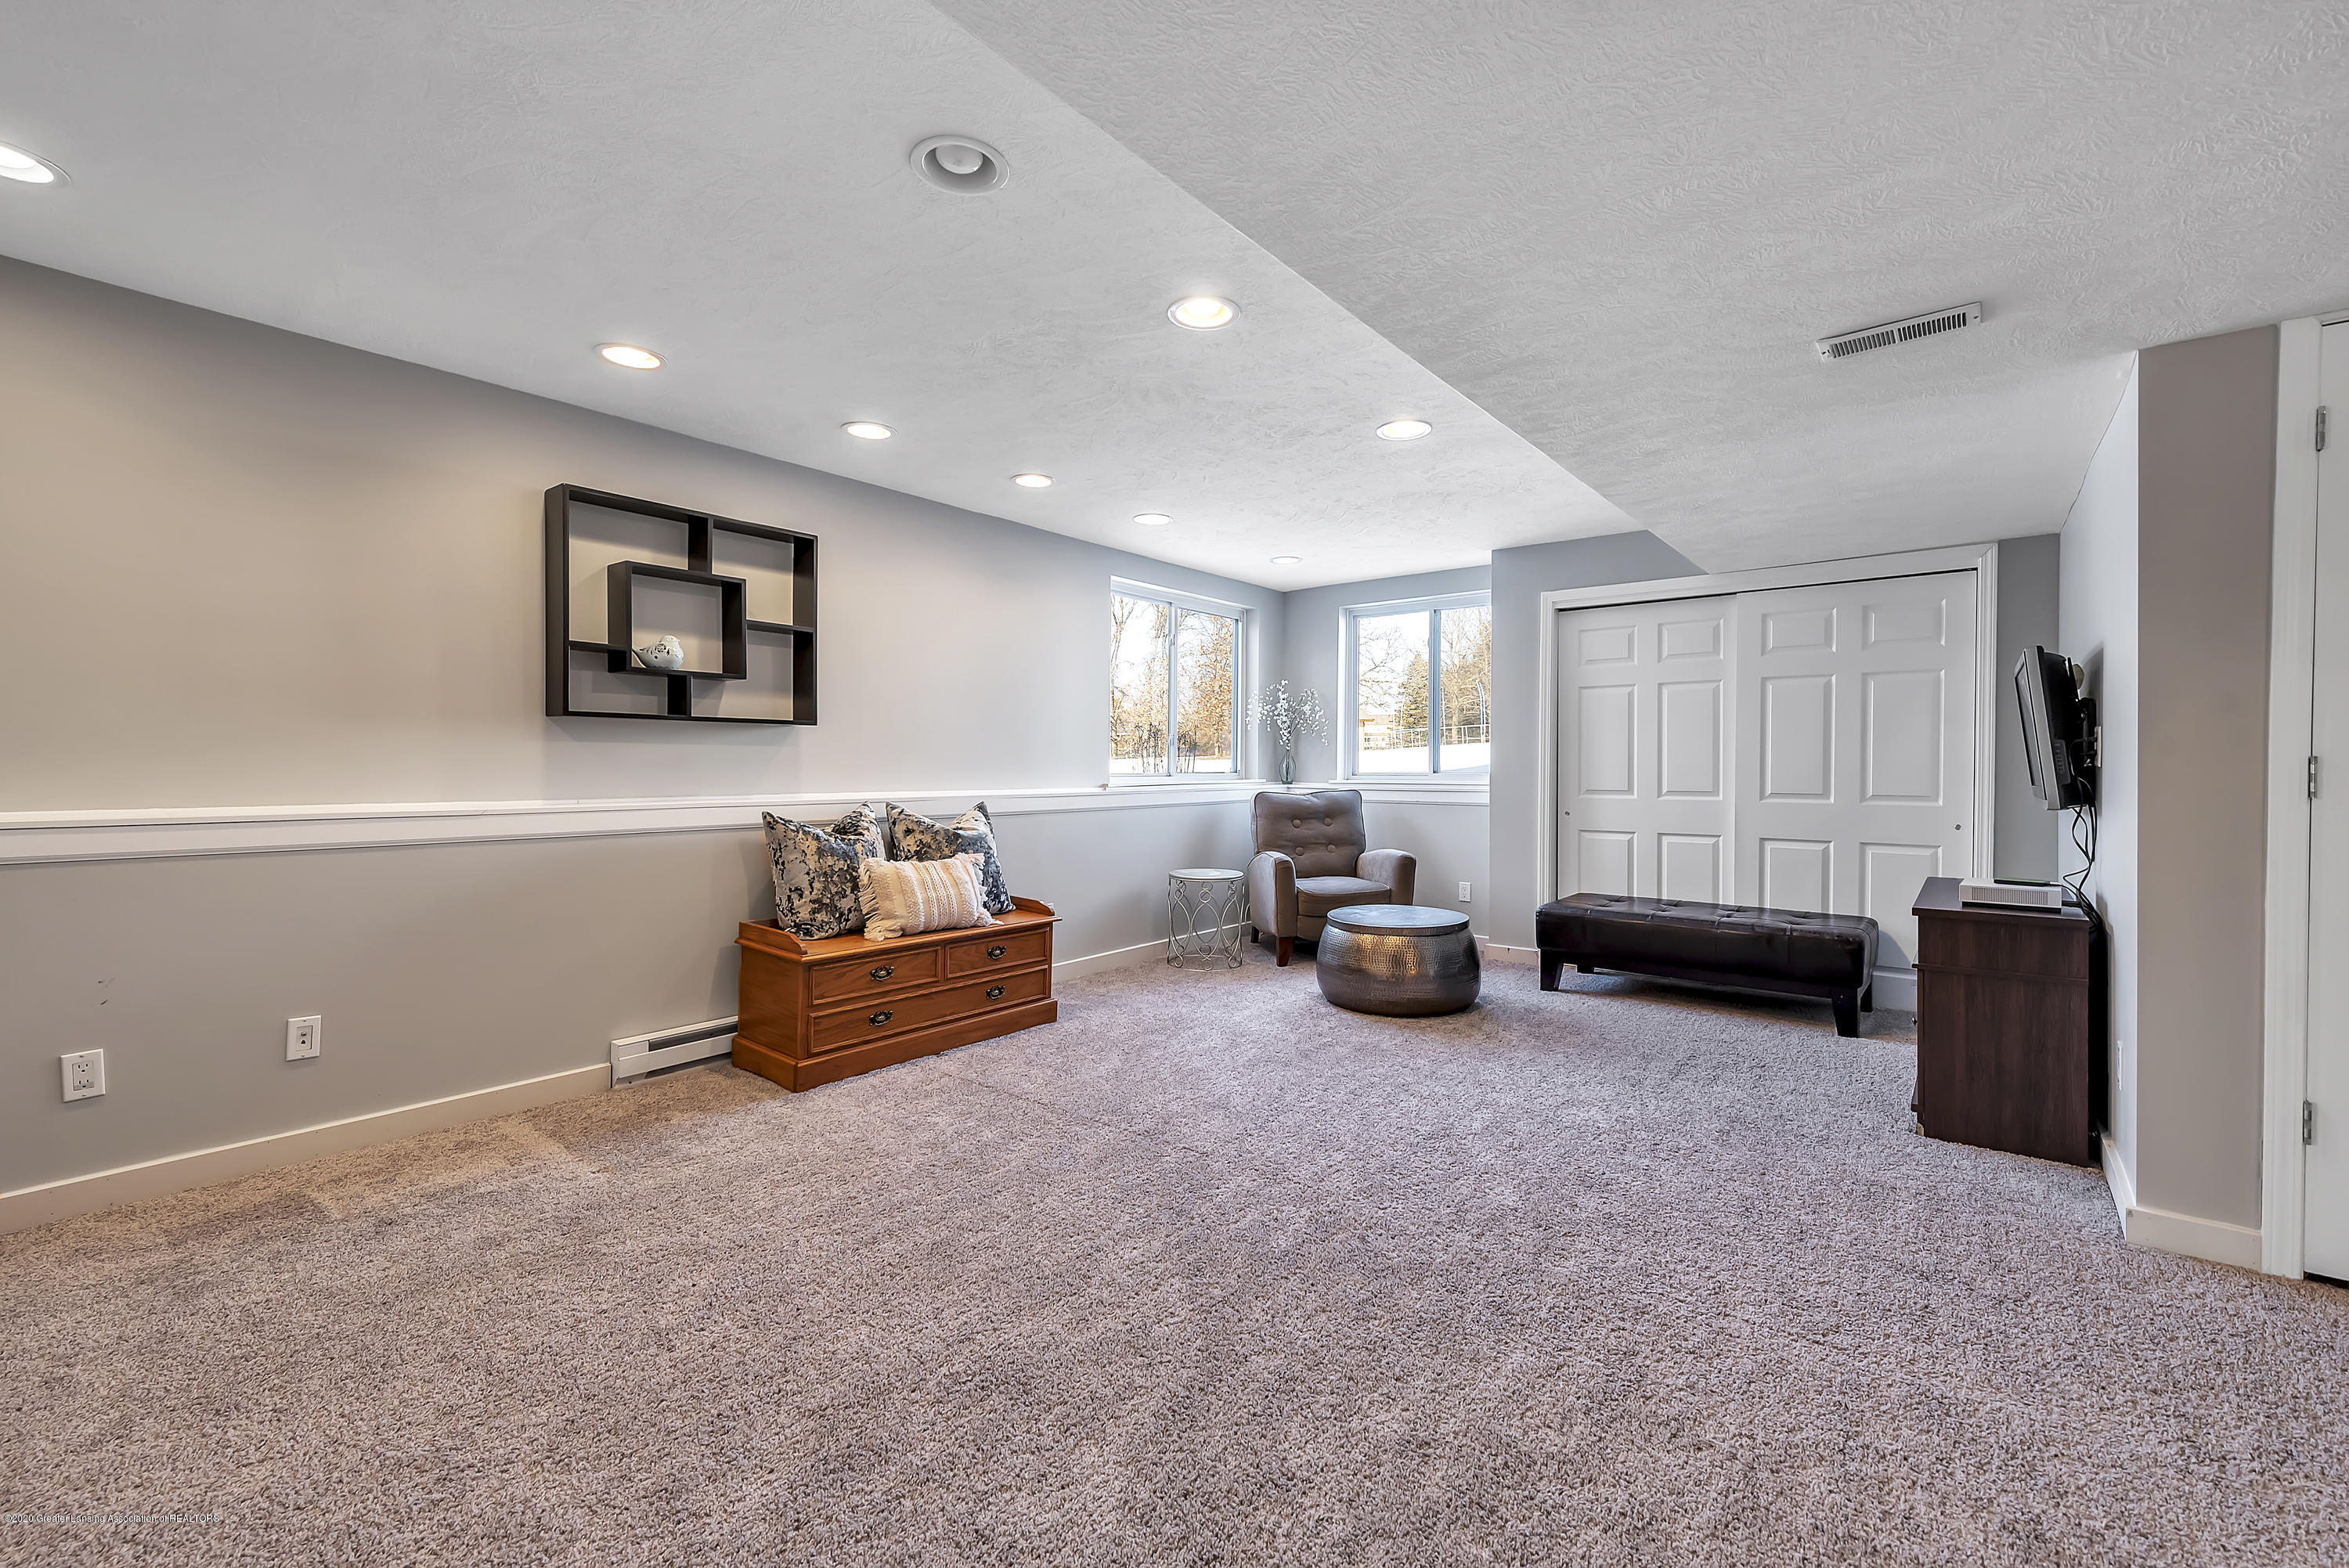 5206 Witherspoon Way - 5206-Witherspoon-Way-WindowStill-Real-Es - 34